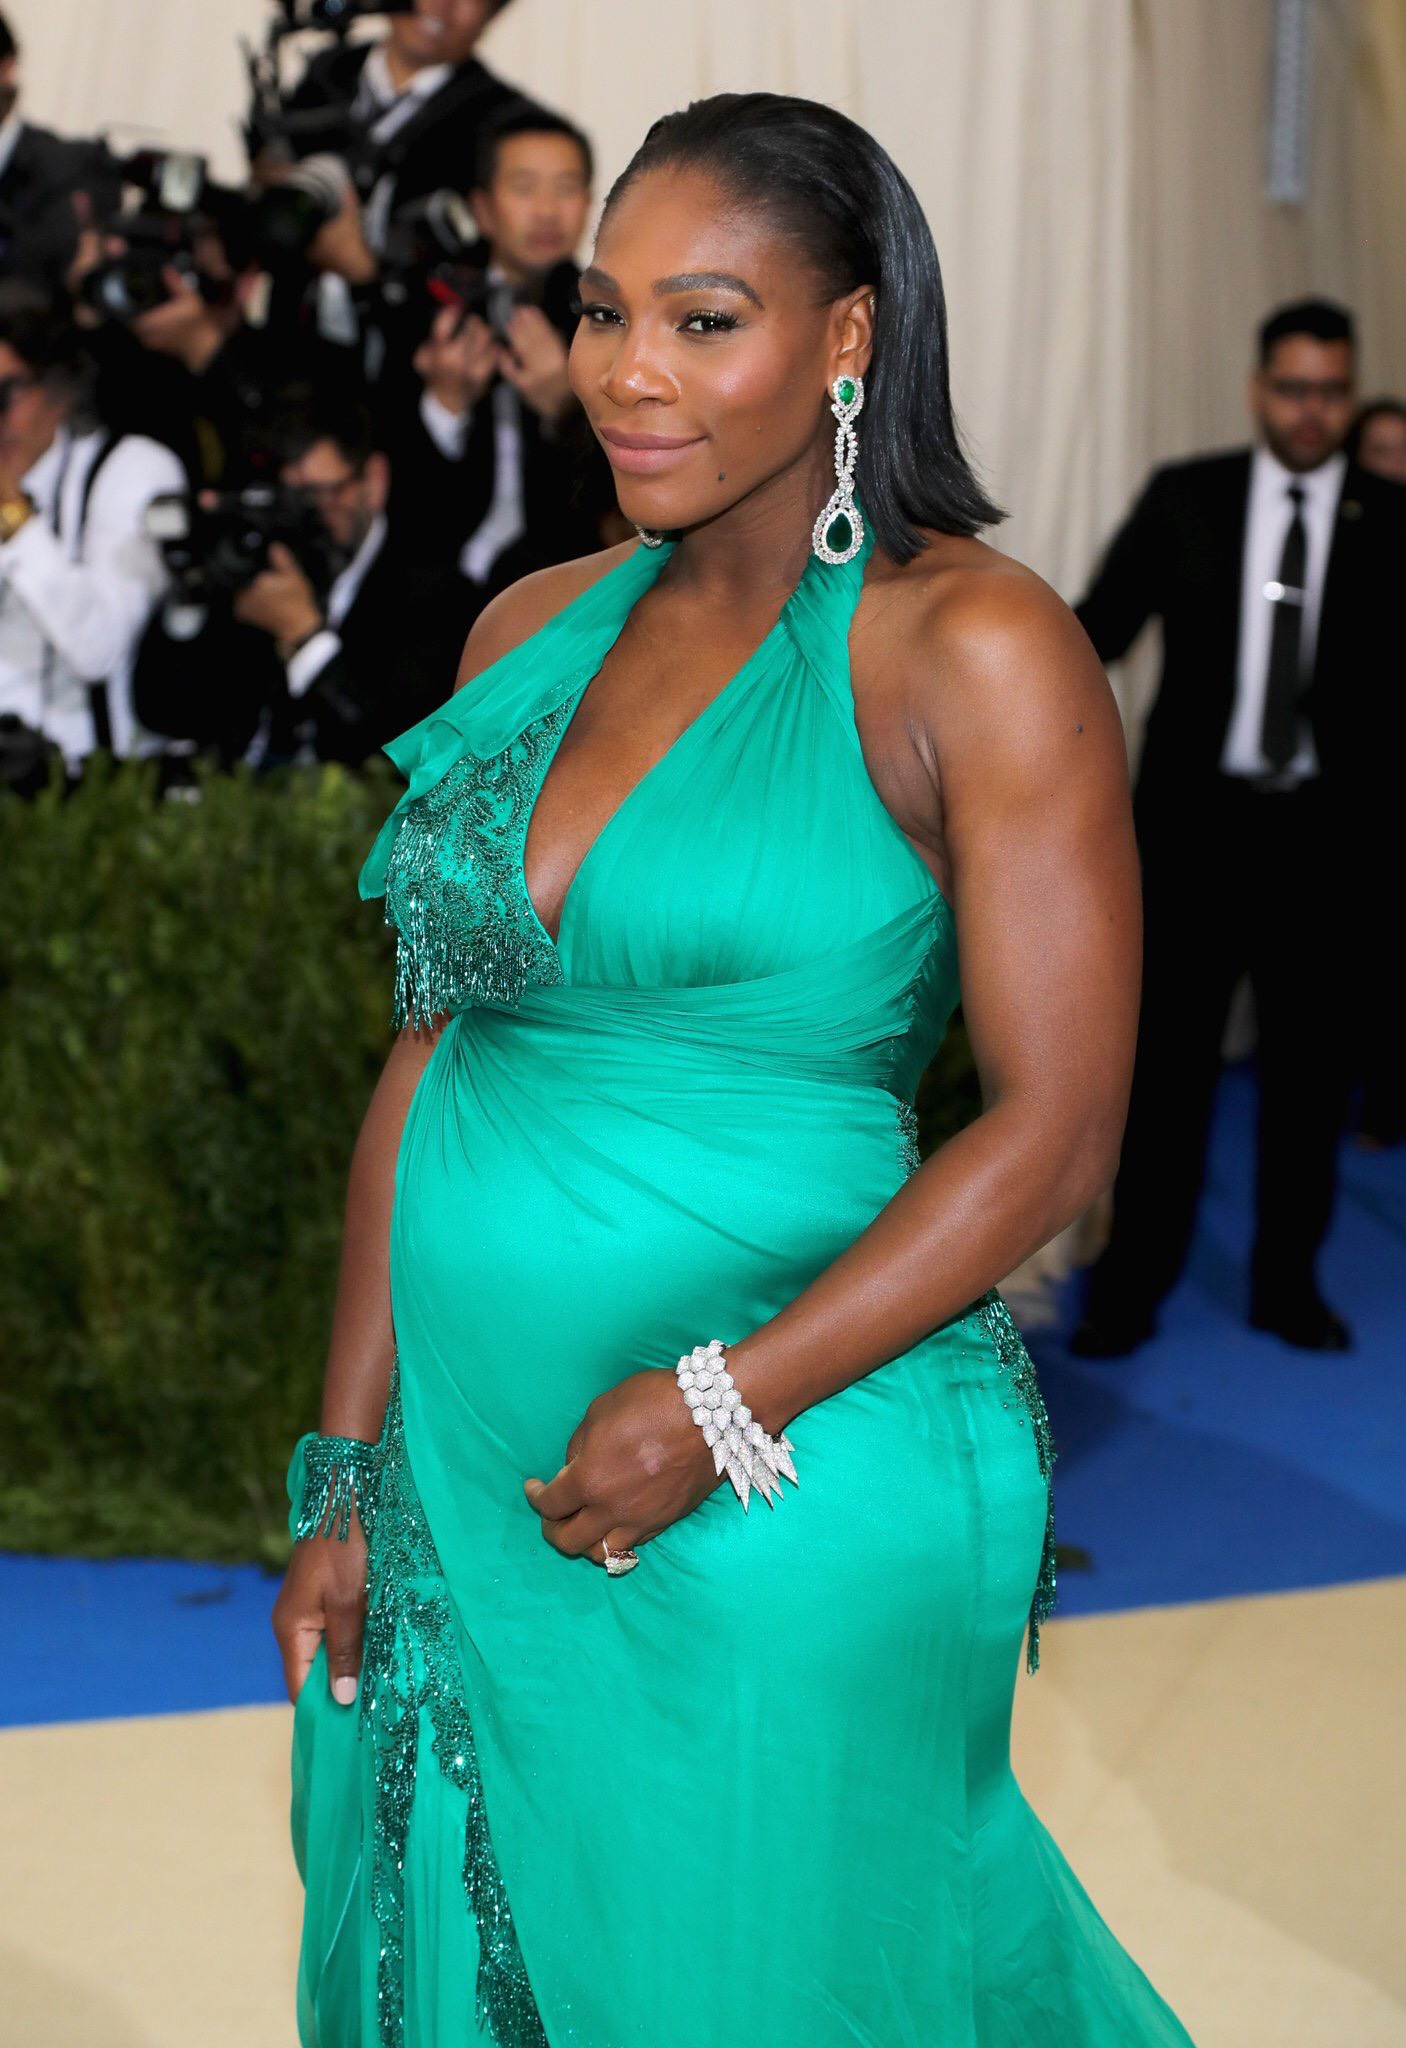 Serena Williams serving up maternity realness in Versace